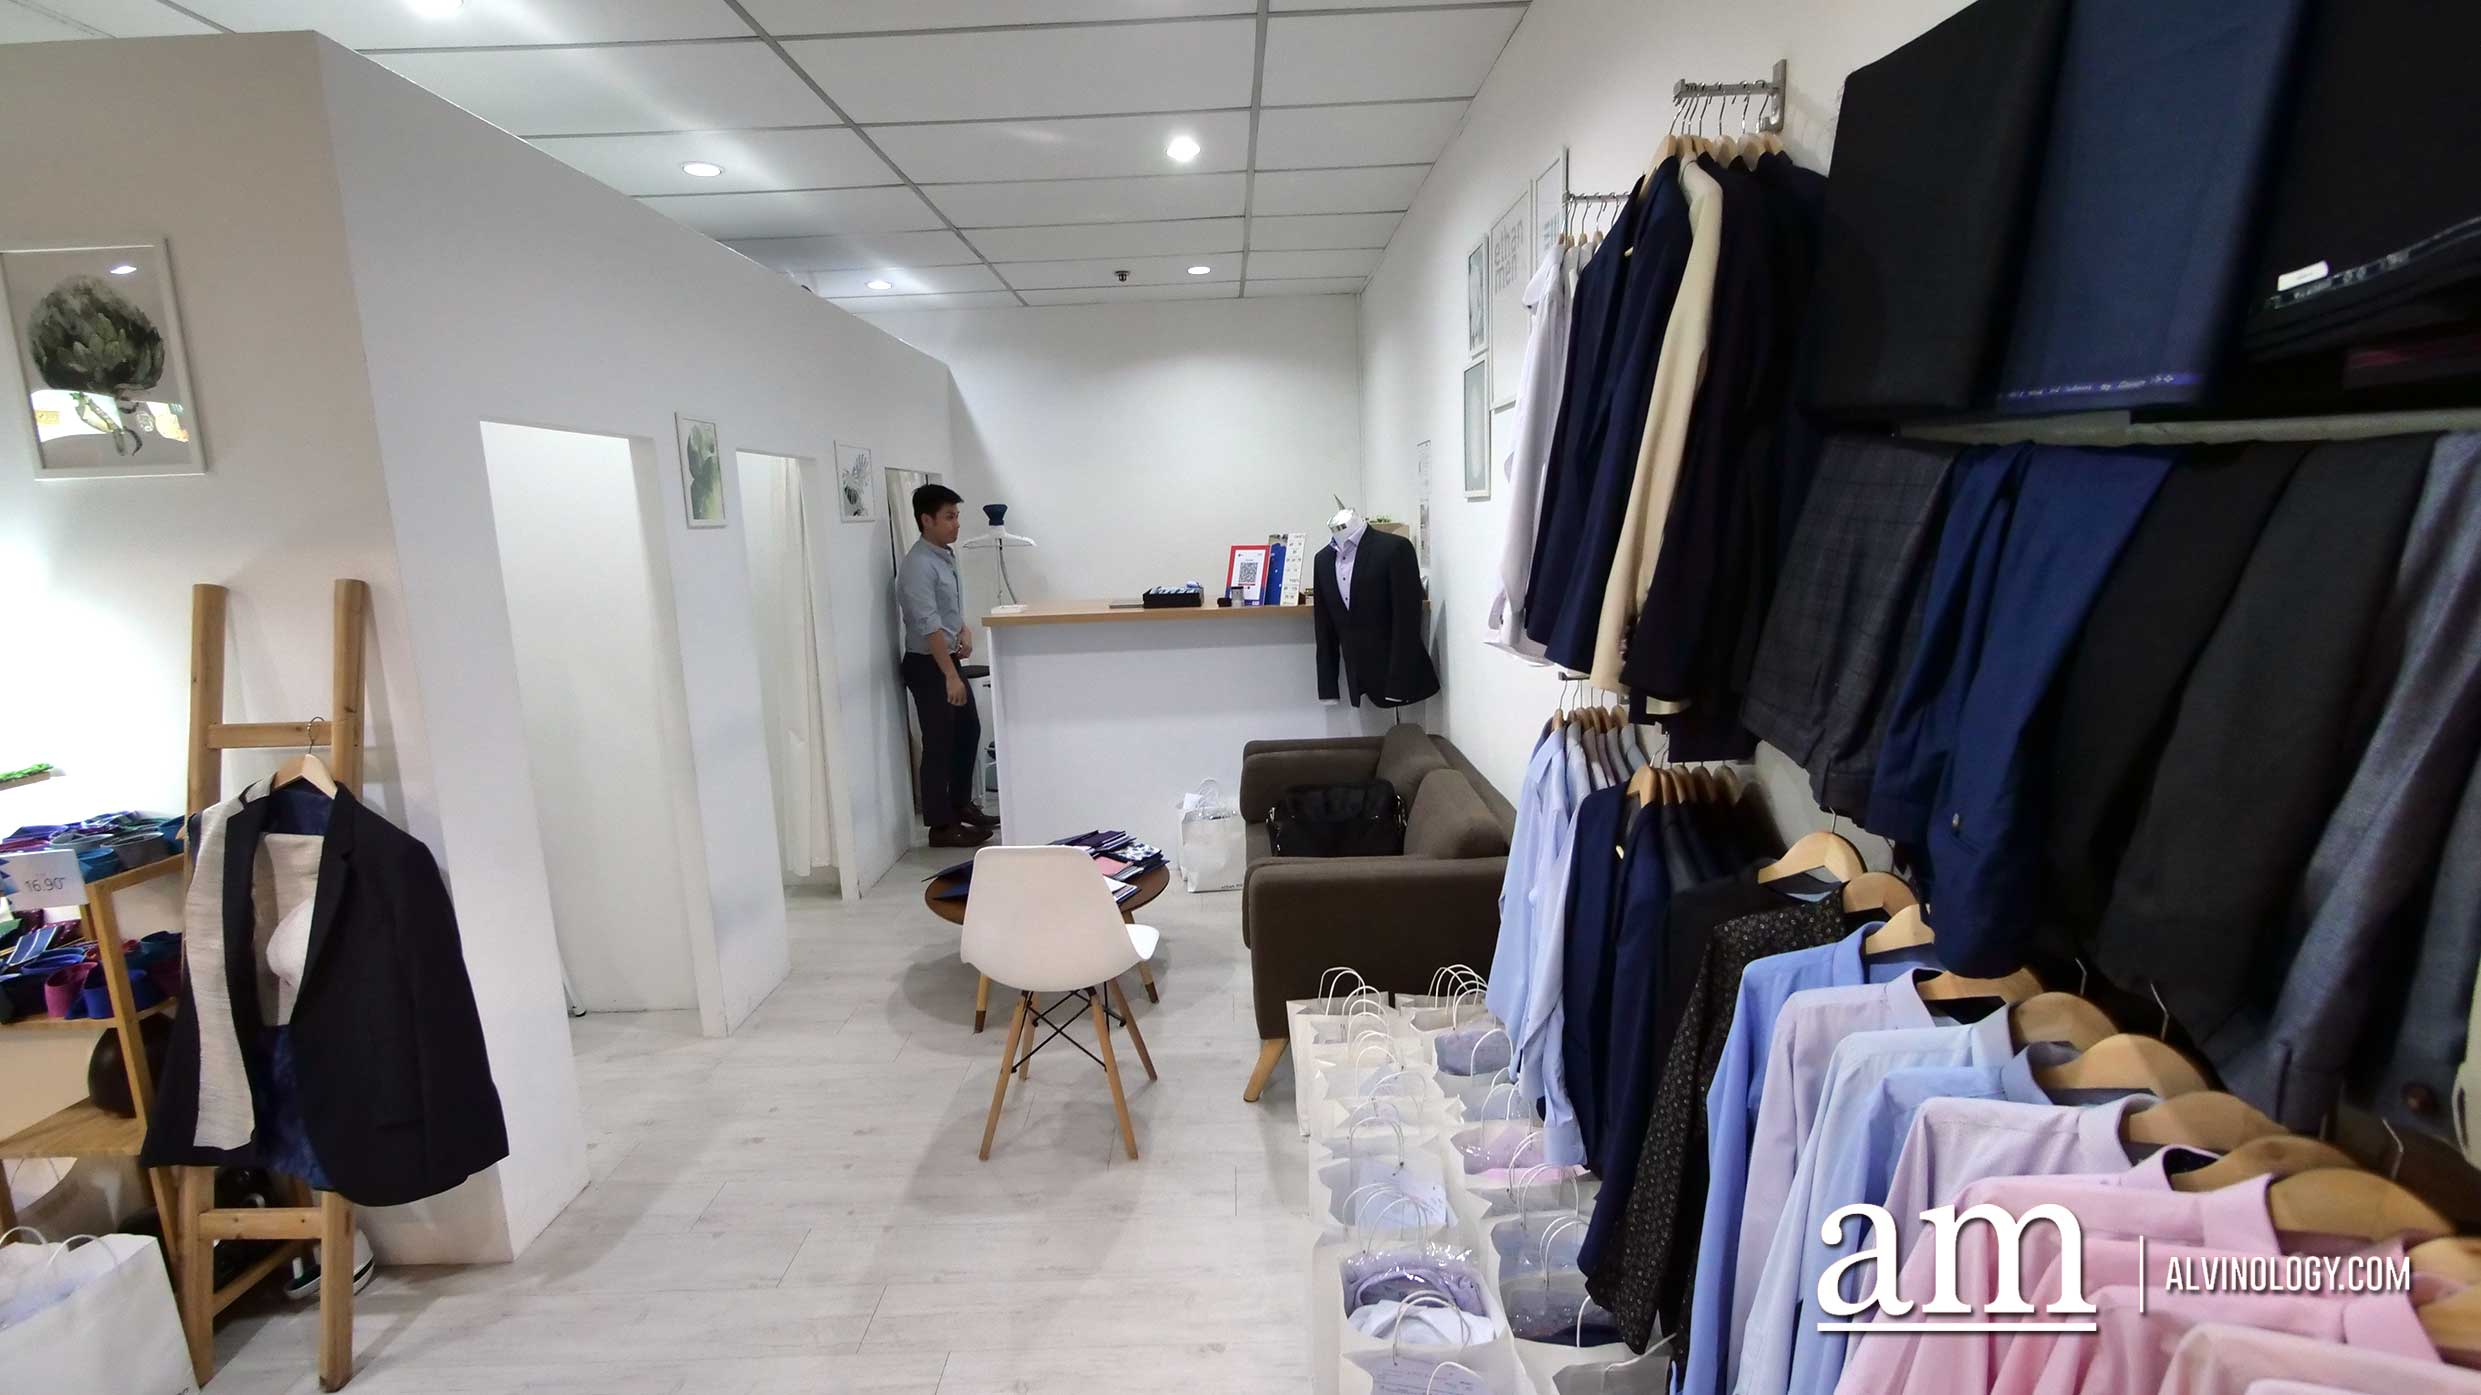 [PROMO CODE INSIDE] Looking for a quality custom-tailor in Singapore with a reasonable rate? Check out ethan men at International Plaza - Alvinology